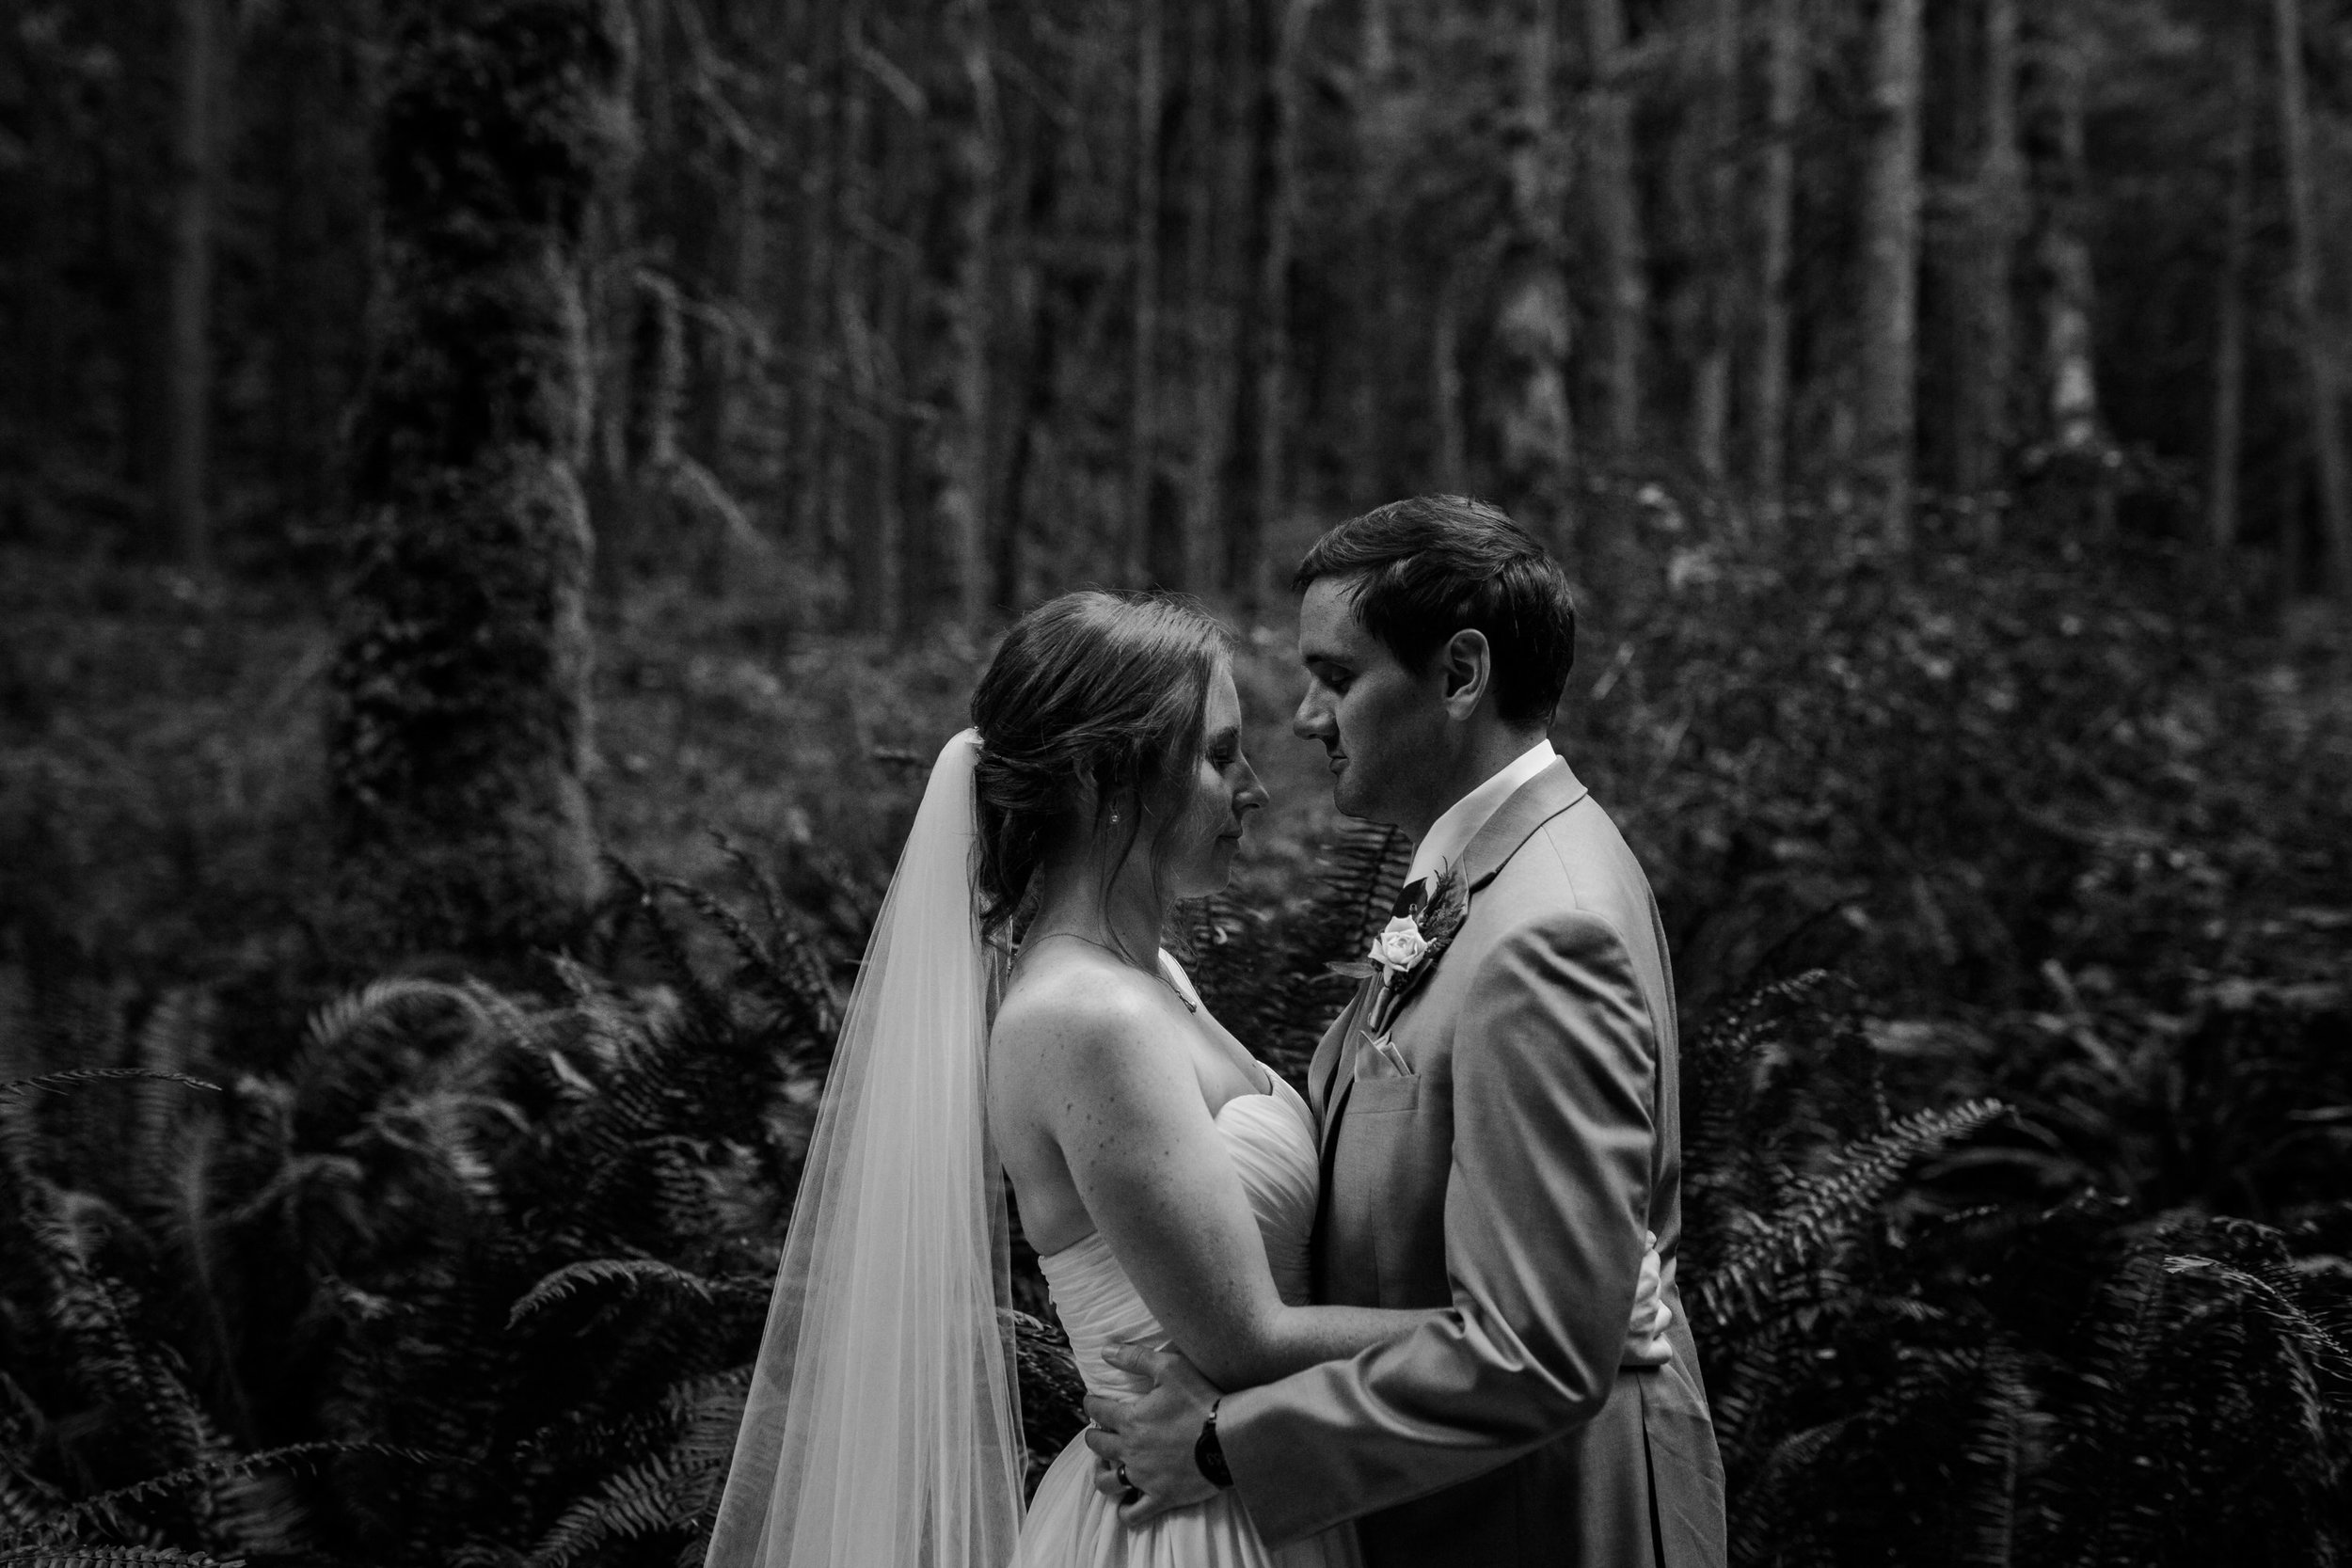 West Coast Wilderness Lodge Wedding Photos - Vancouver Wedding Photographer & Videographer - Sunshine Coast Wedding Photos - Sunshine Coast Wedding Photographer - Jennifer Picard Photography - IMG_7118.jpg